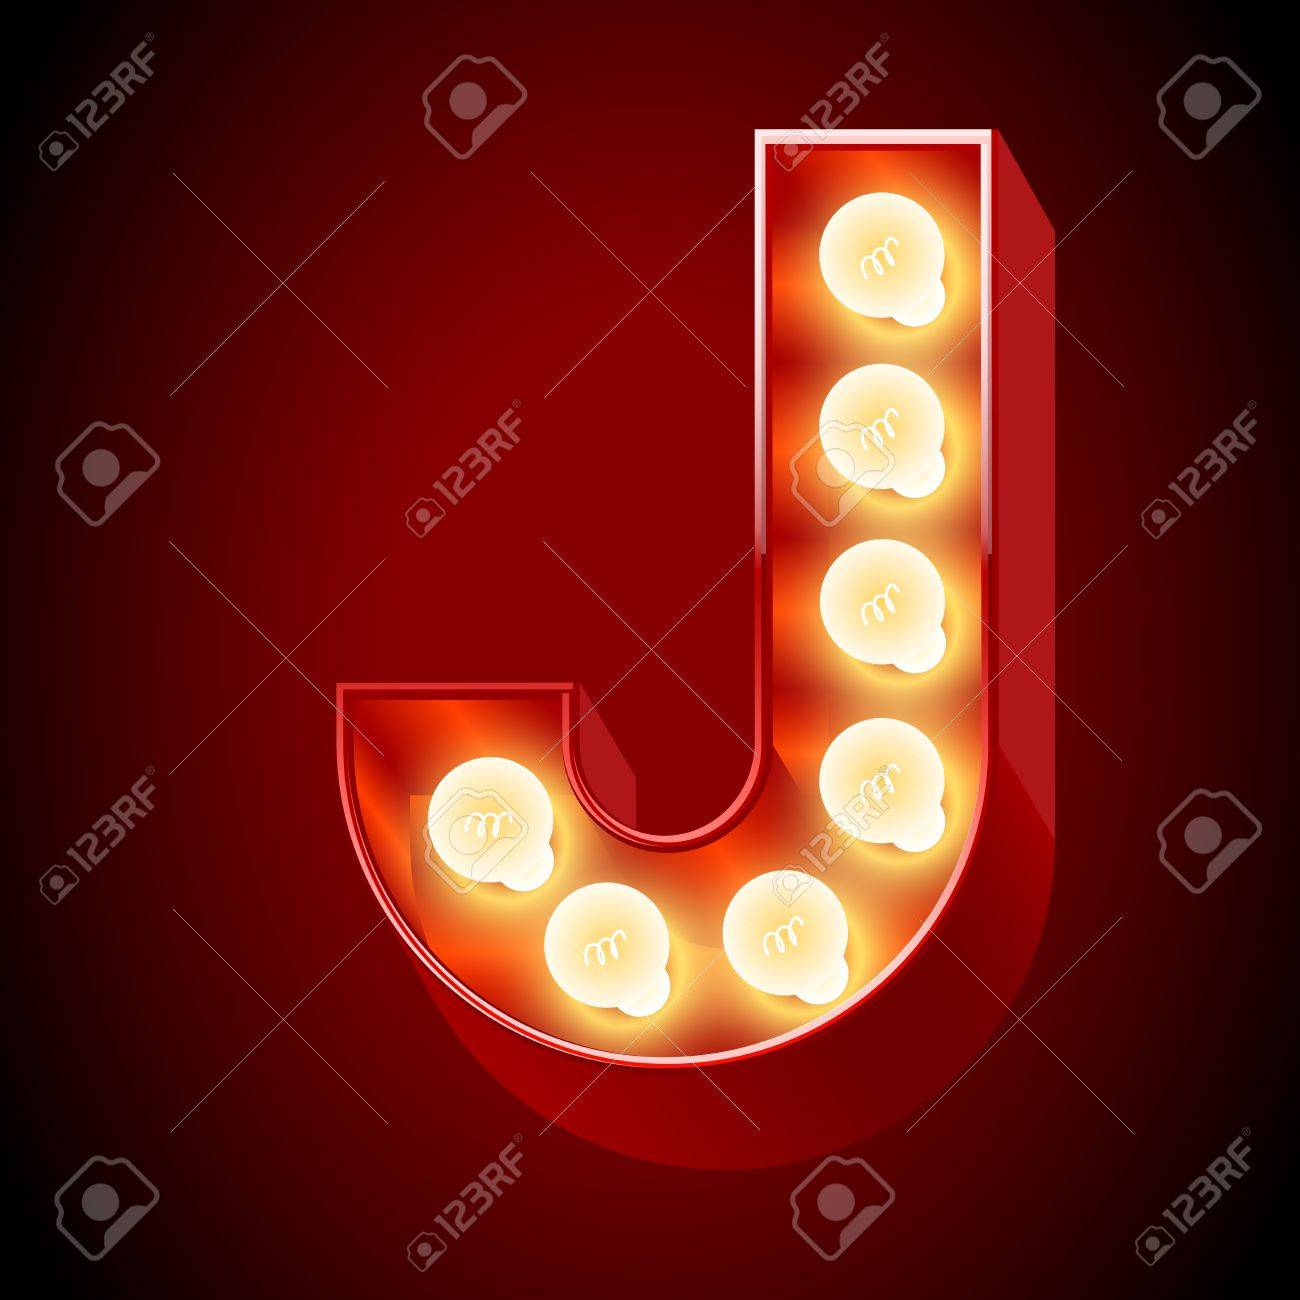 Old Lamp Alphabet For Light Board Letter J Royalty Free Cliparts